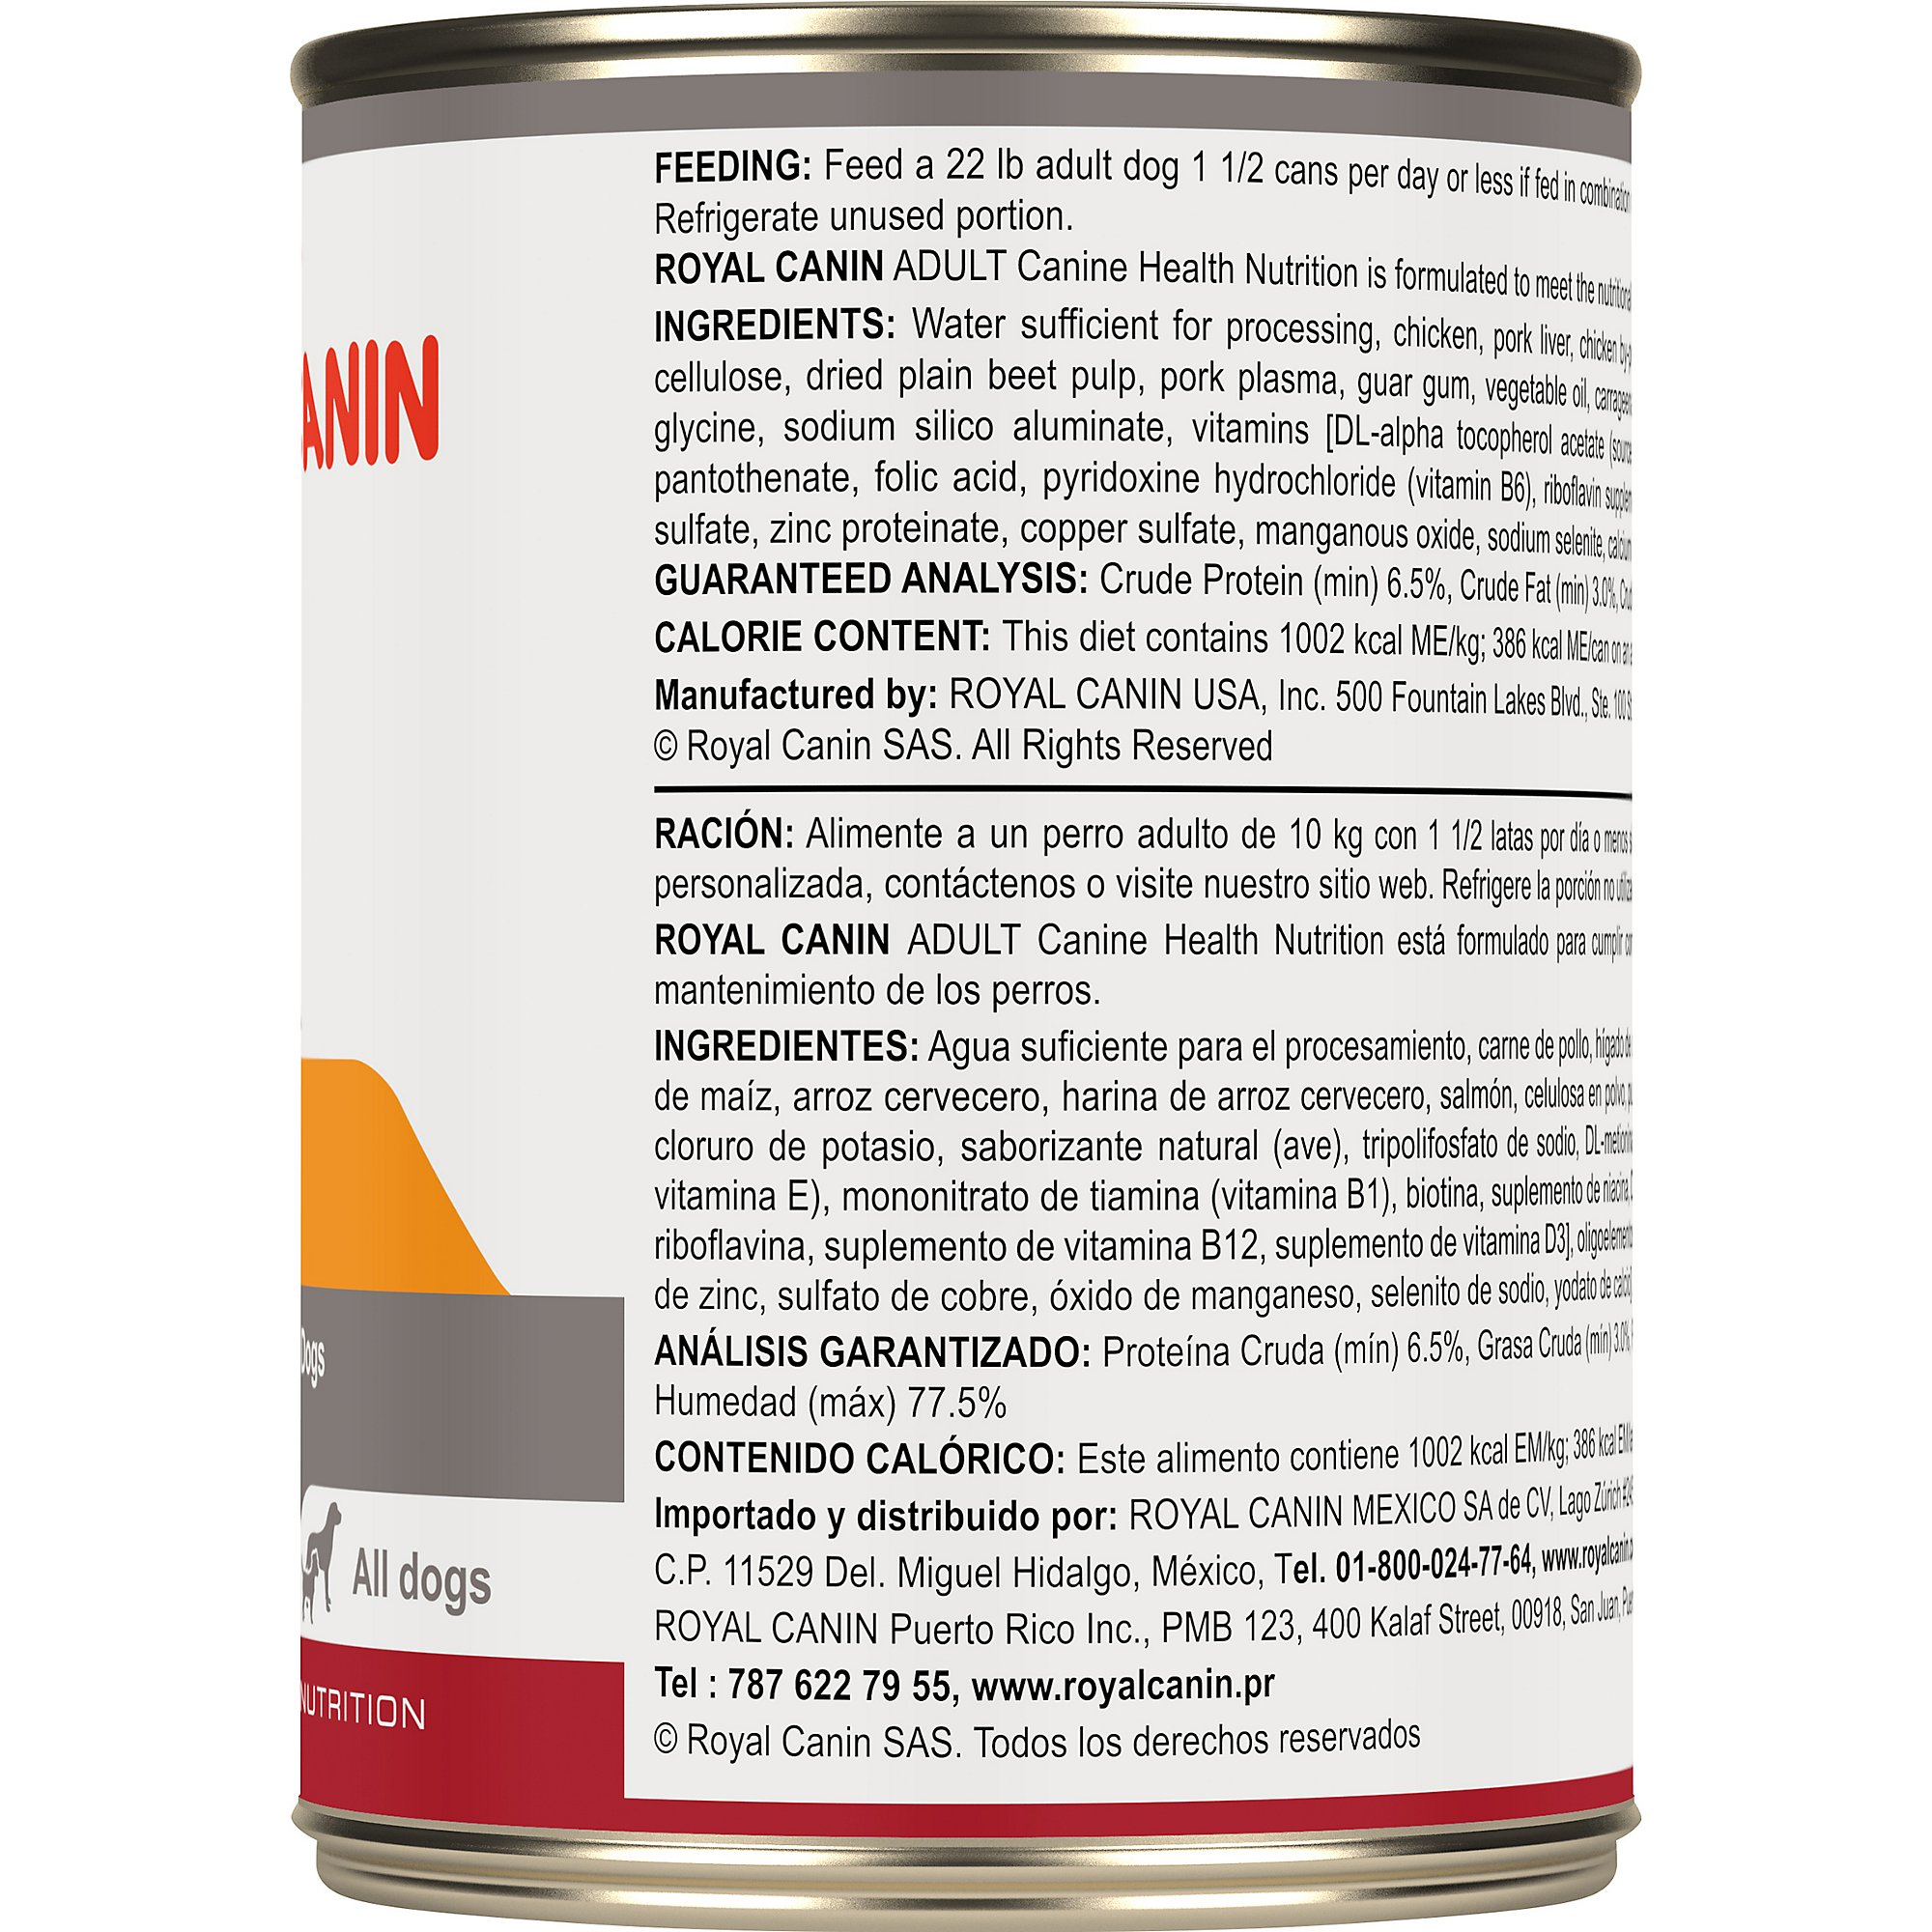 Royal Canin Canine Health Nutrition Adult In Gel Canned Dog Food (Case of 12/1), 13.5 oz by Royal Canin (Image #4)